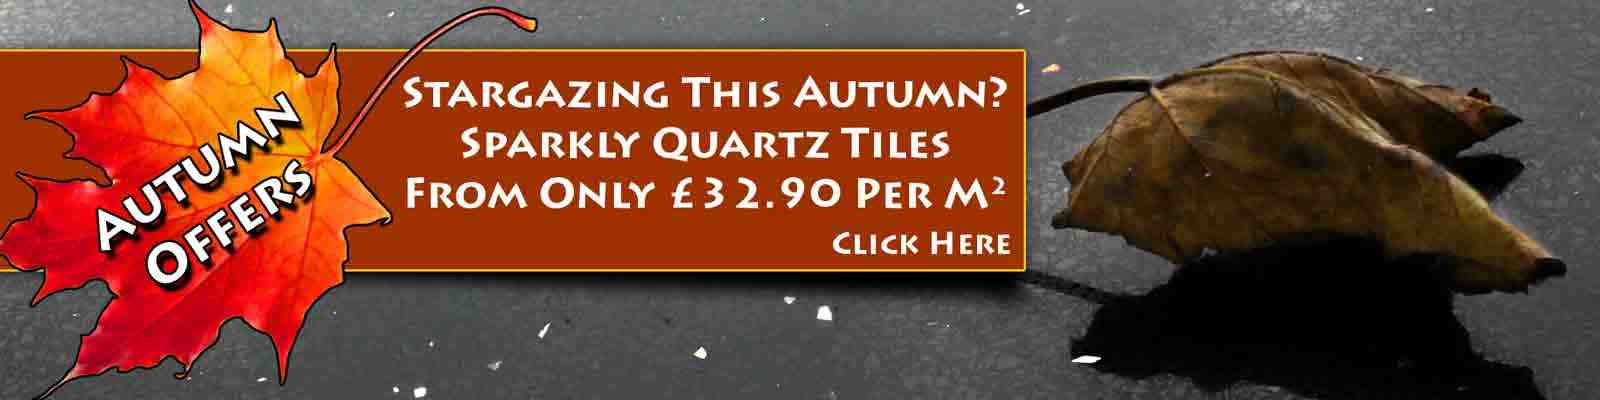 November Deals - Autumn Offers on Quartz Tiles